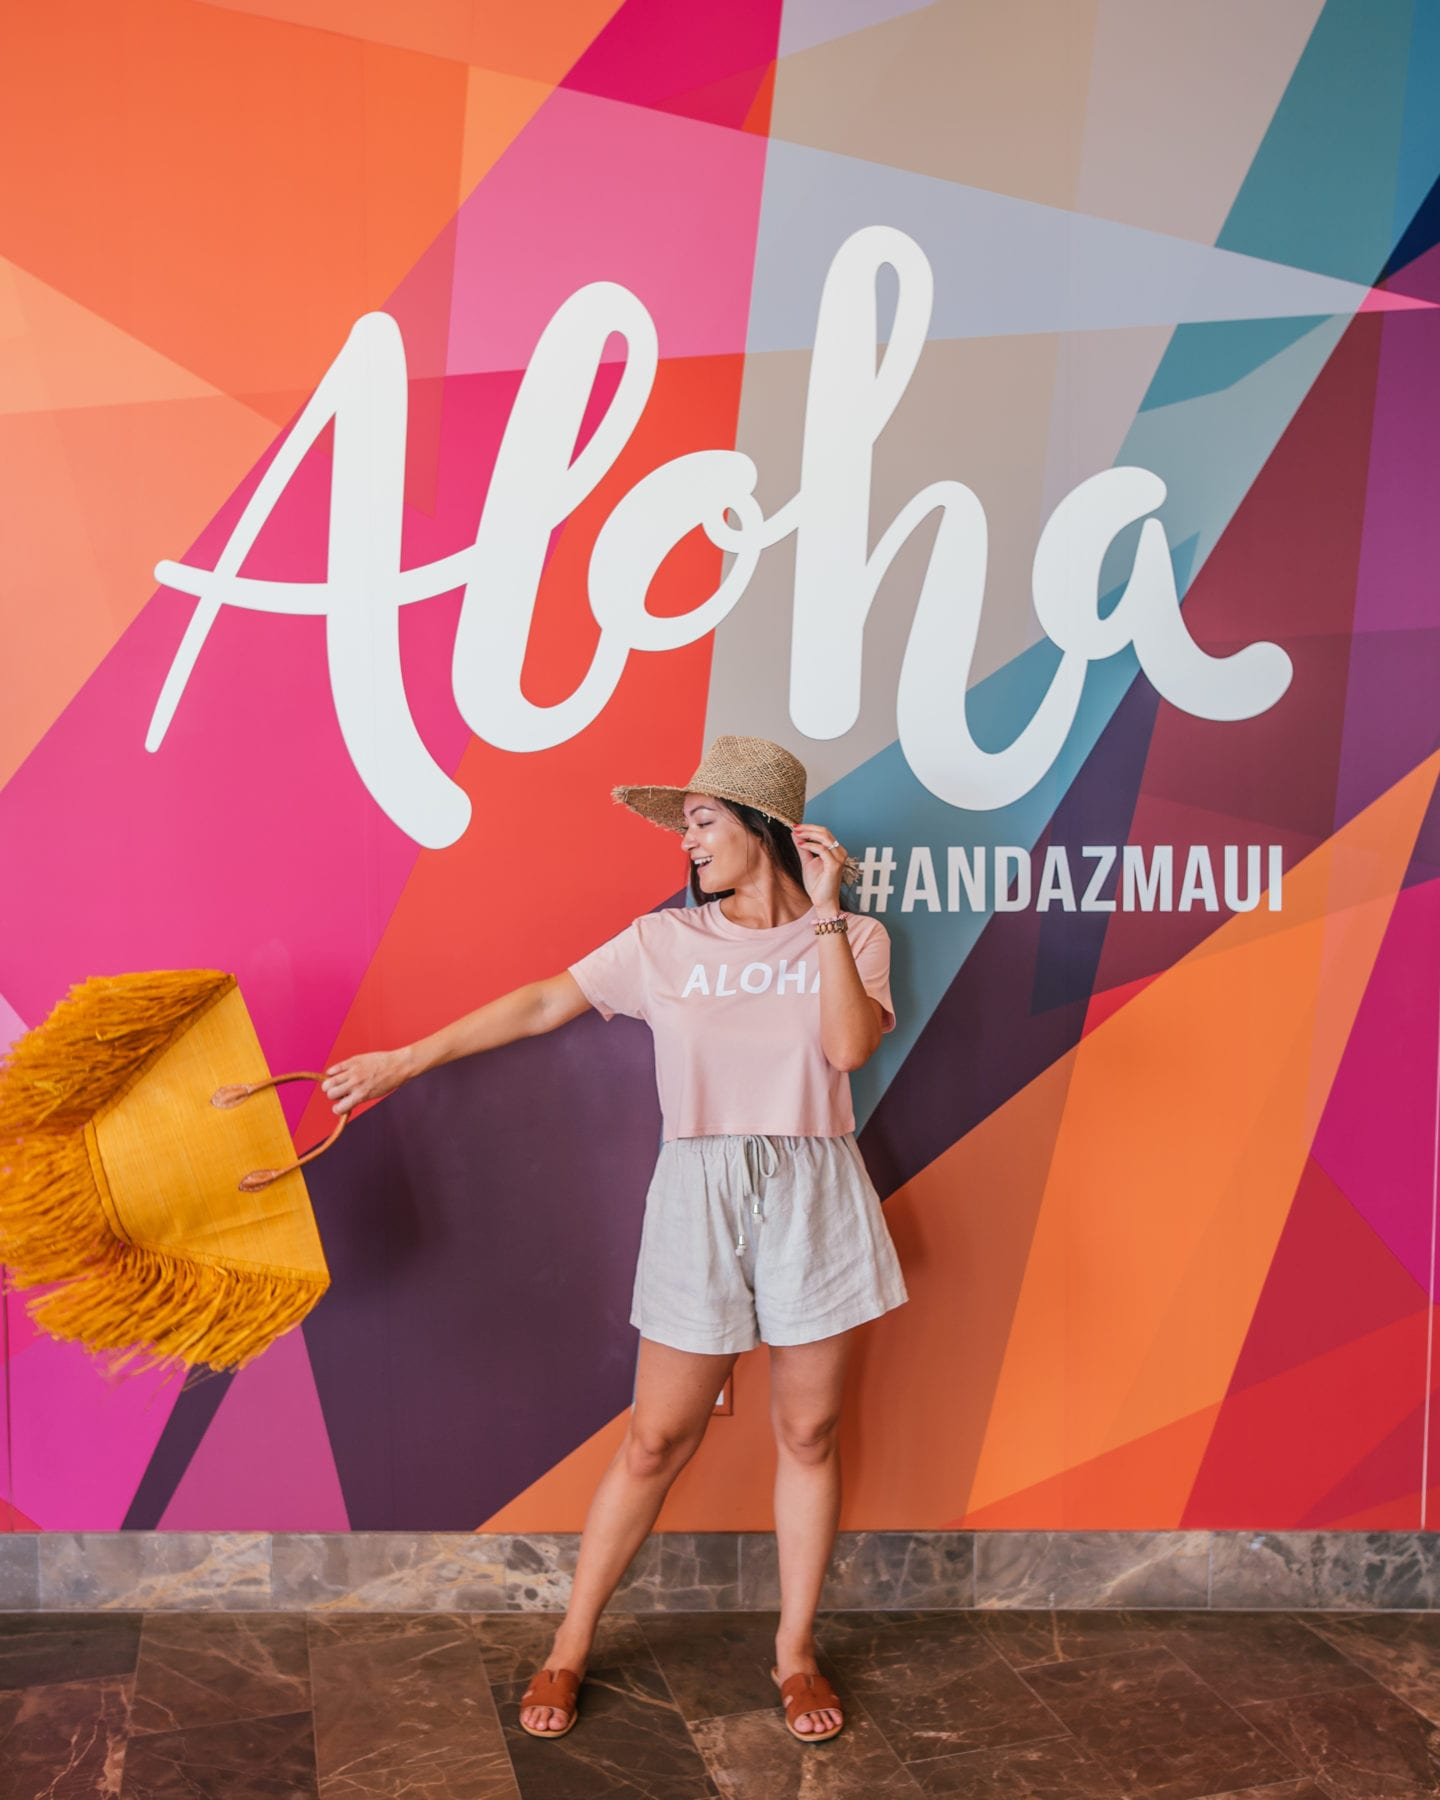 The Andaz Maui at Wailea Resort: A Hotel Review